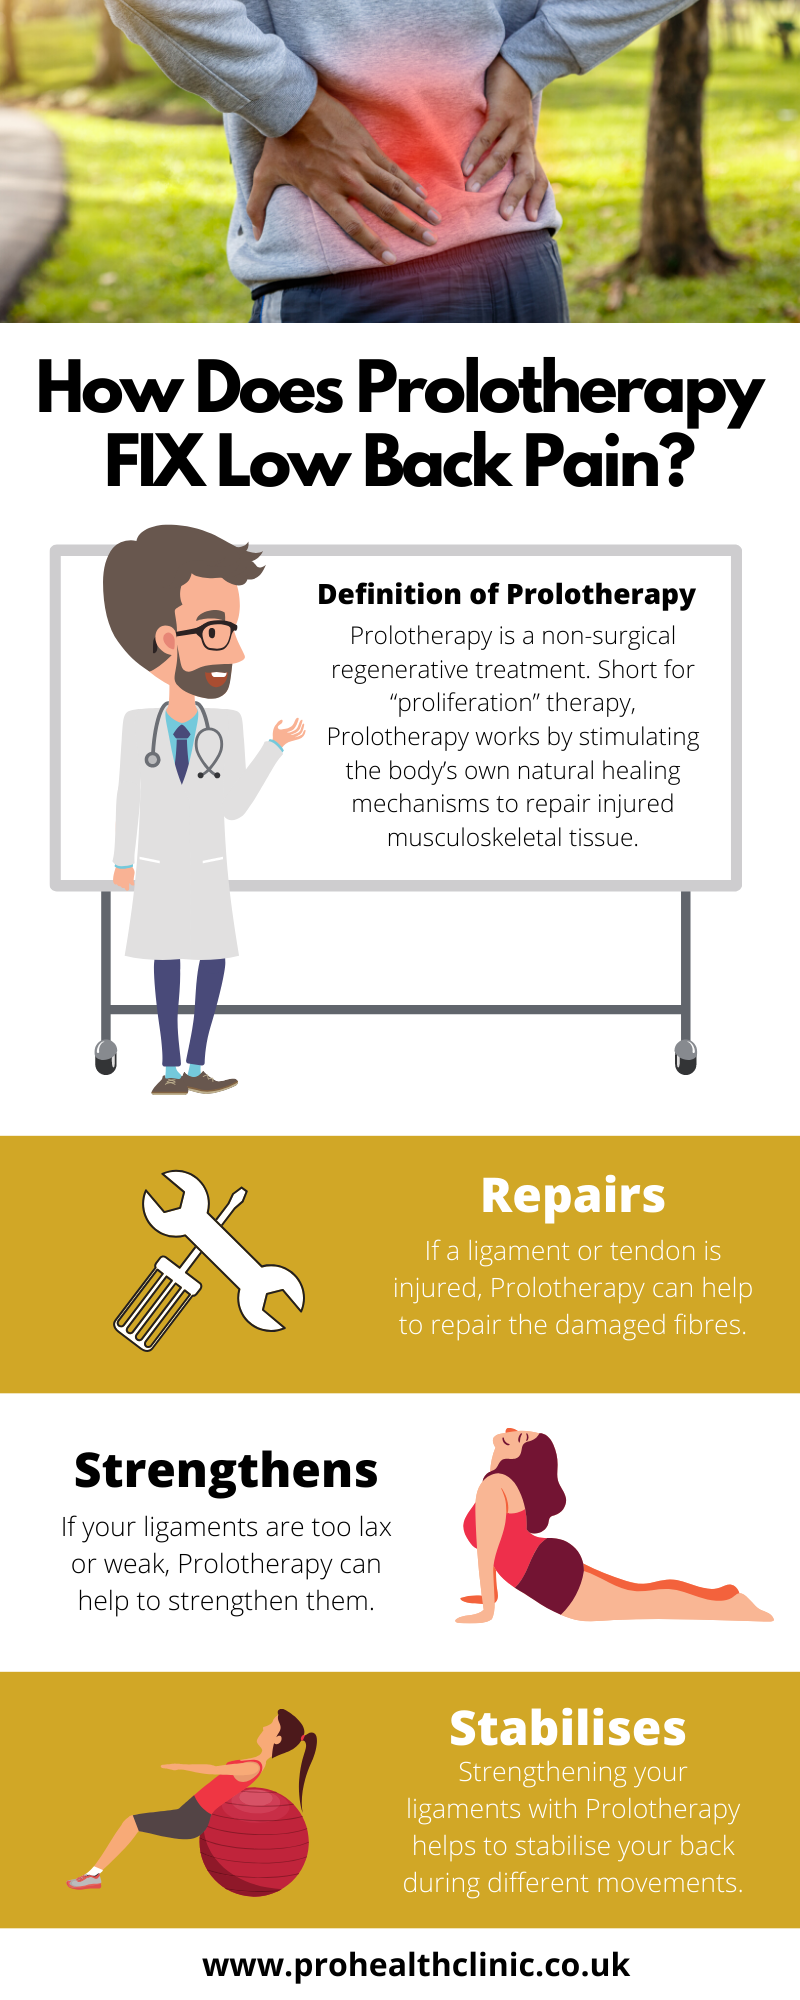 Inforgraphic describing how prolotherapy helps low back pain